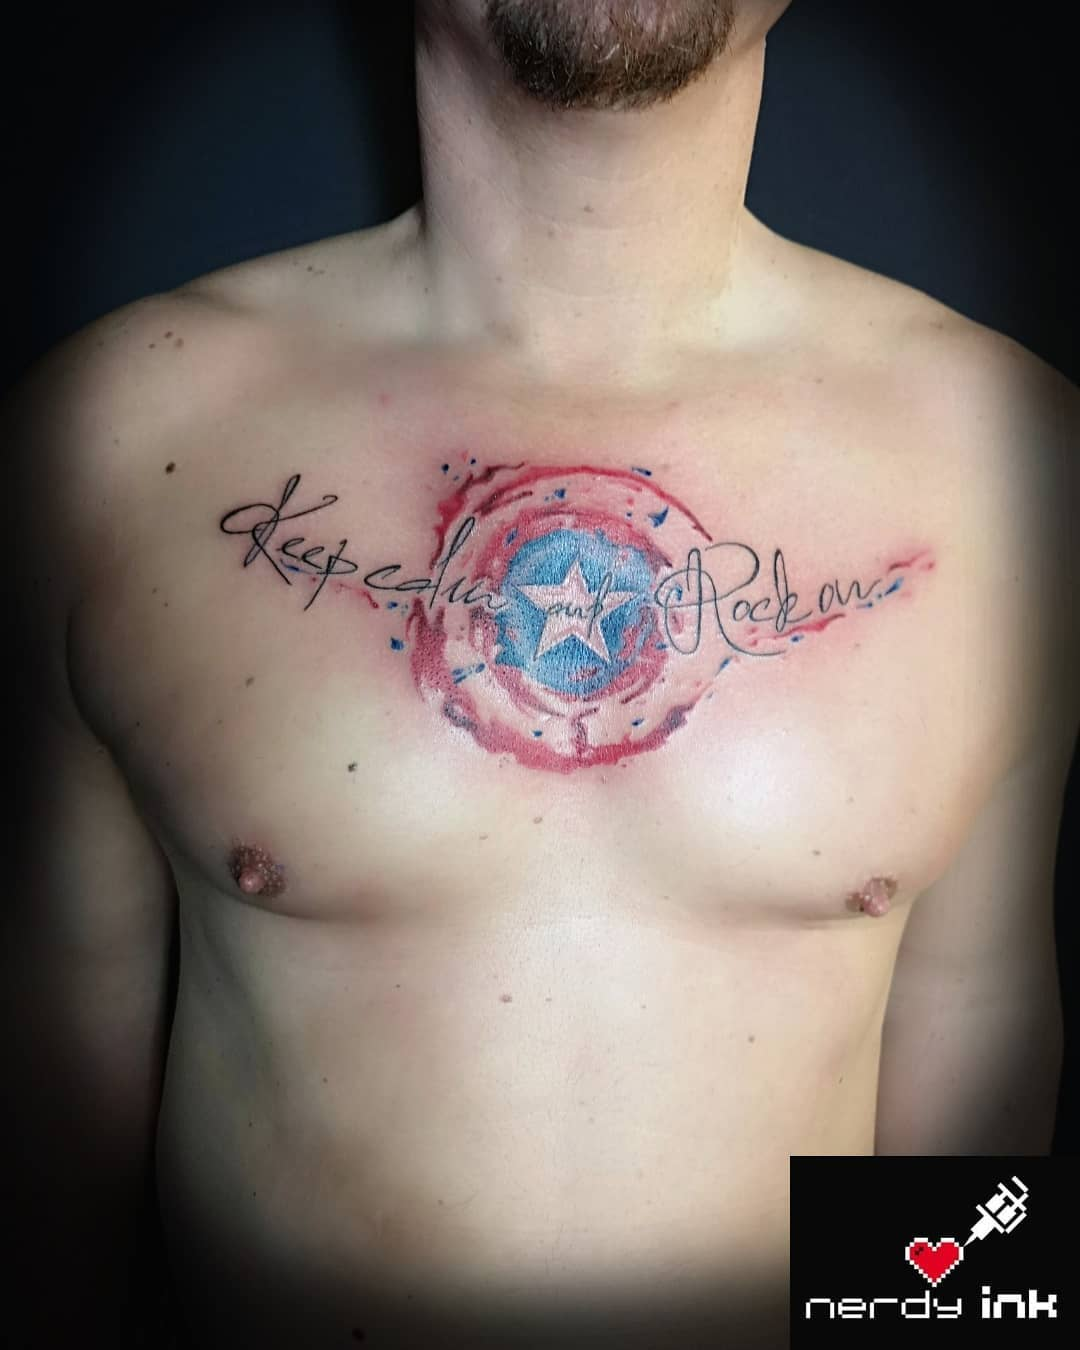 """Captain America """"keep calm and rock on"""" tattoo"""